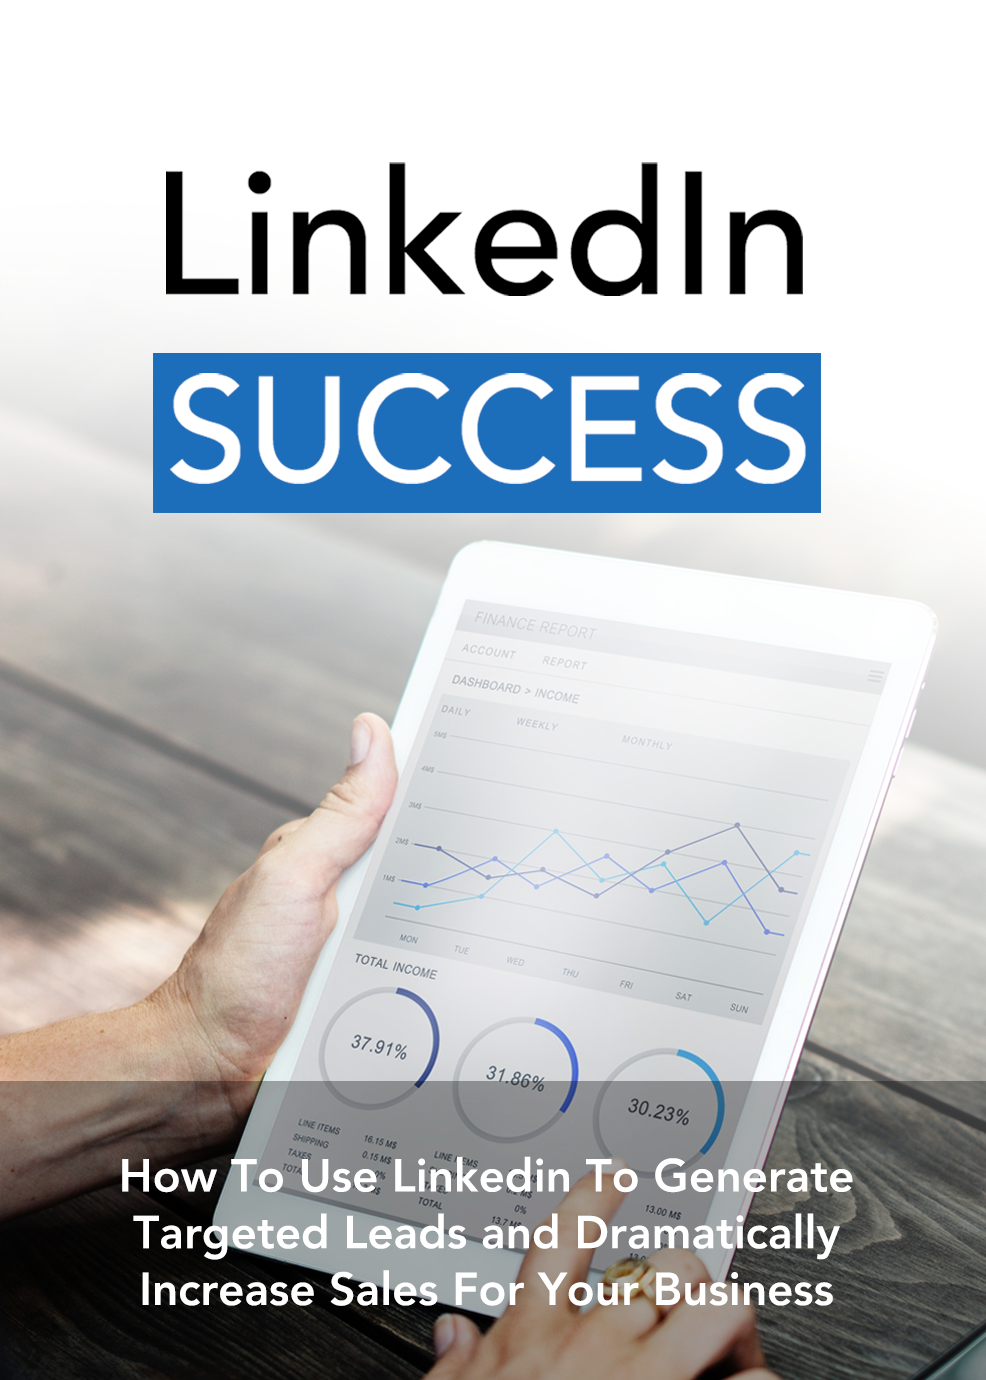 LinkedIn Success (How To Use Linkedin To Generate Targeted Leads And Dramatically Increase Sales For Your Business) Ebook's Ebook Image